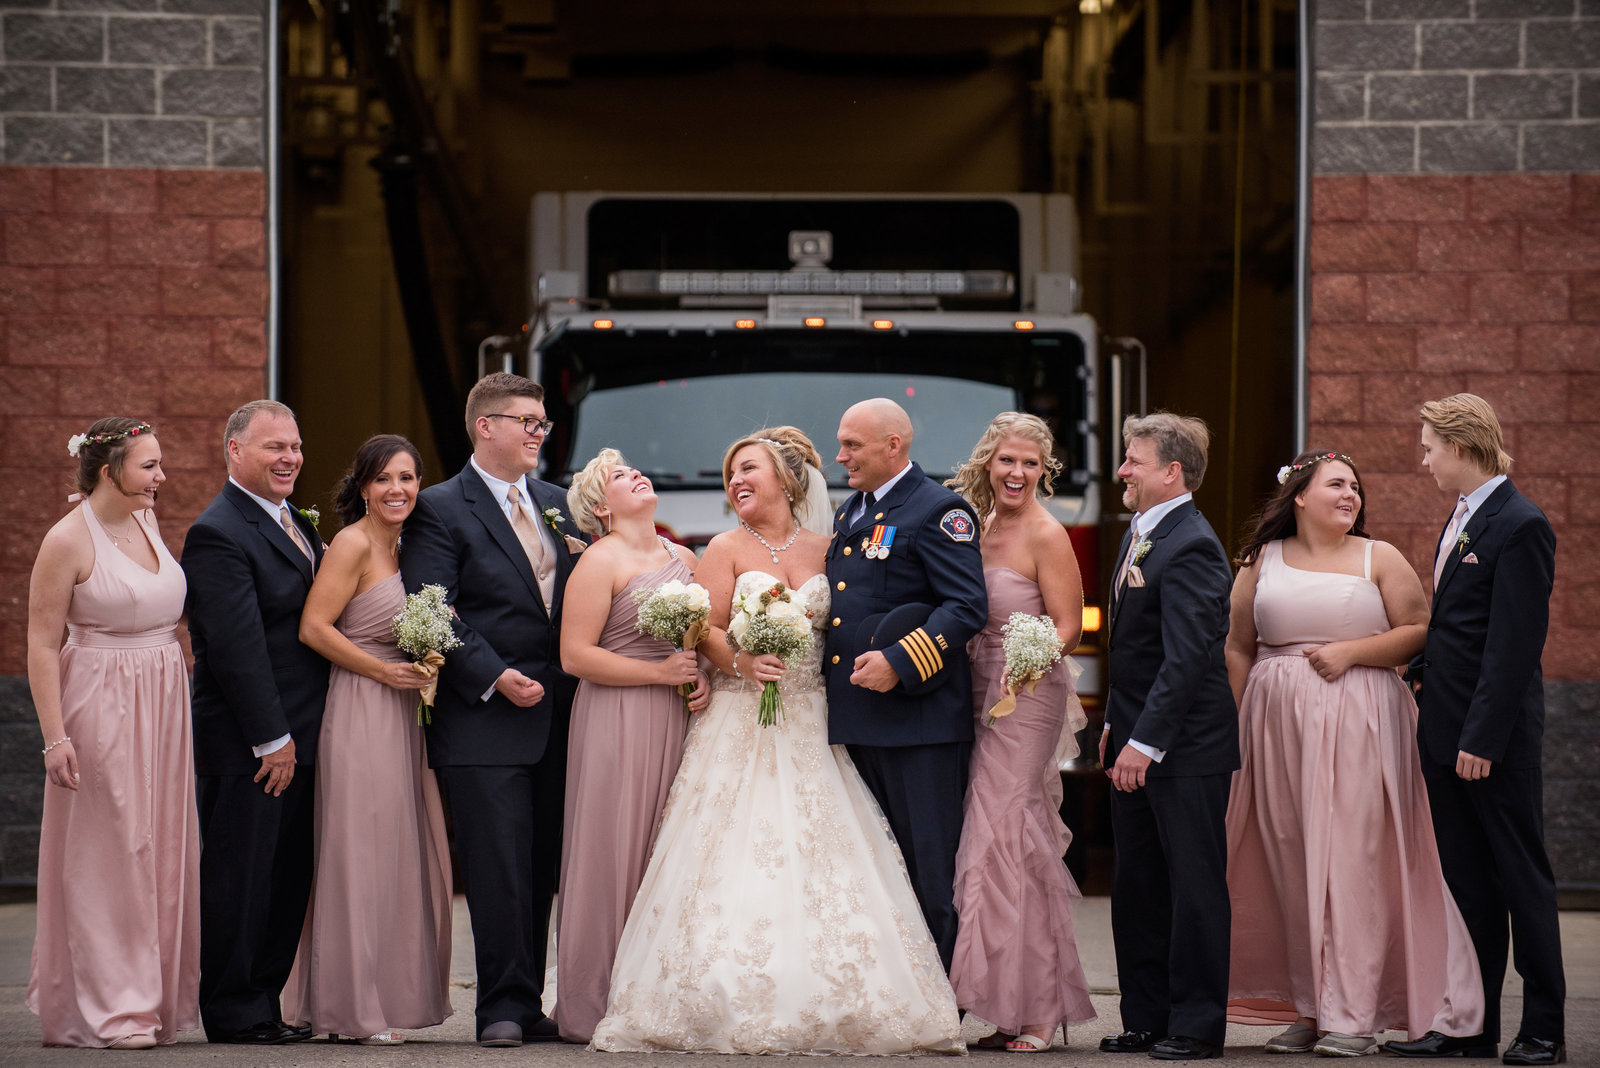 Bridal Party at Firehall in Edmonton